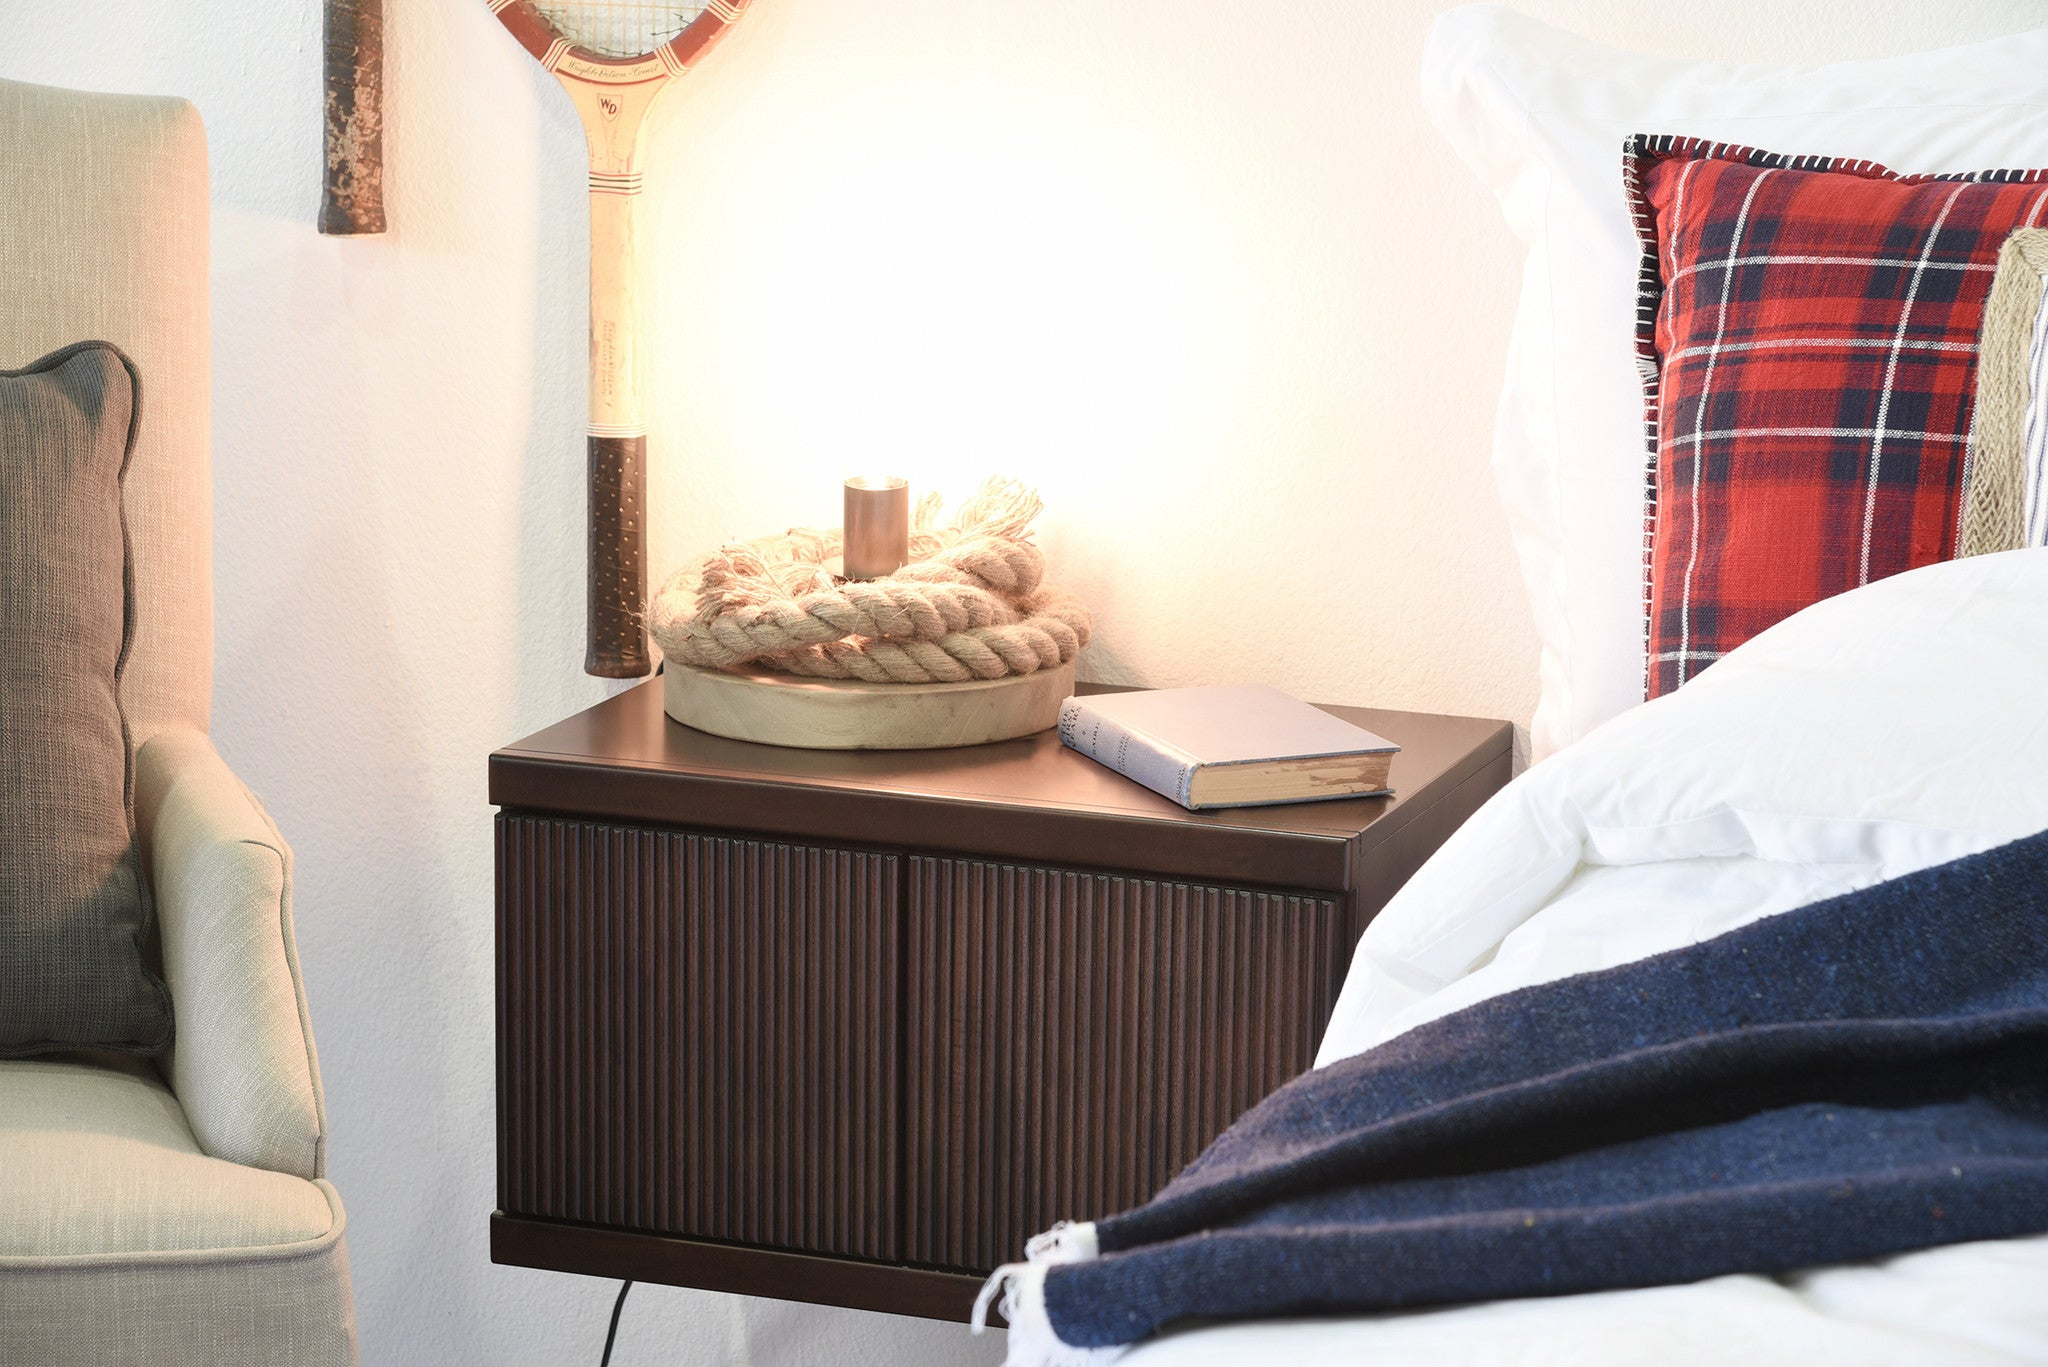 Hanging Floating Wall Mount Nightstand - Curve - Espresso - Woodwaves